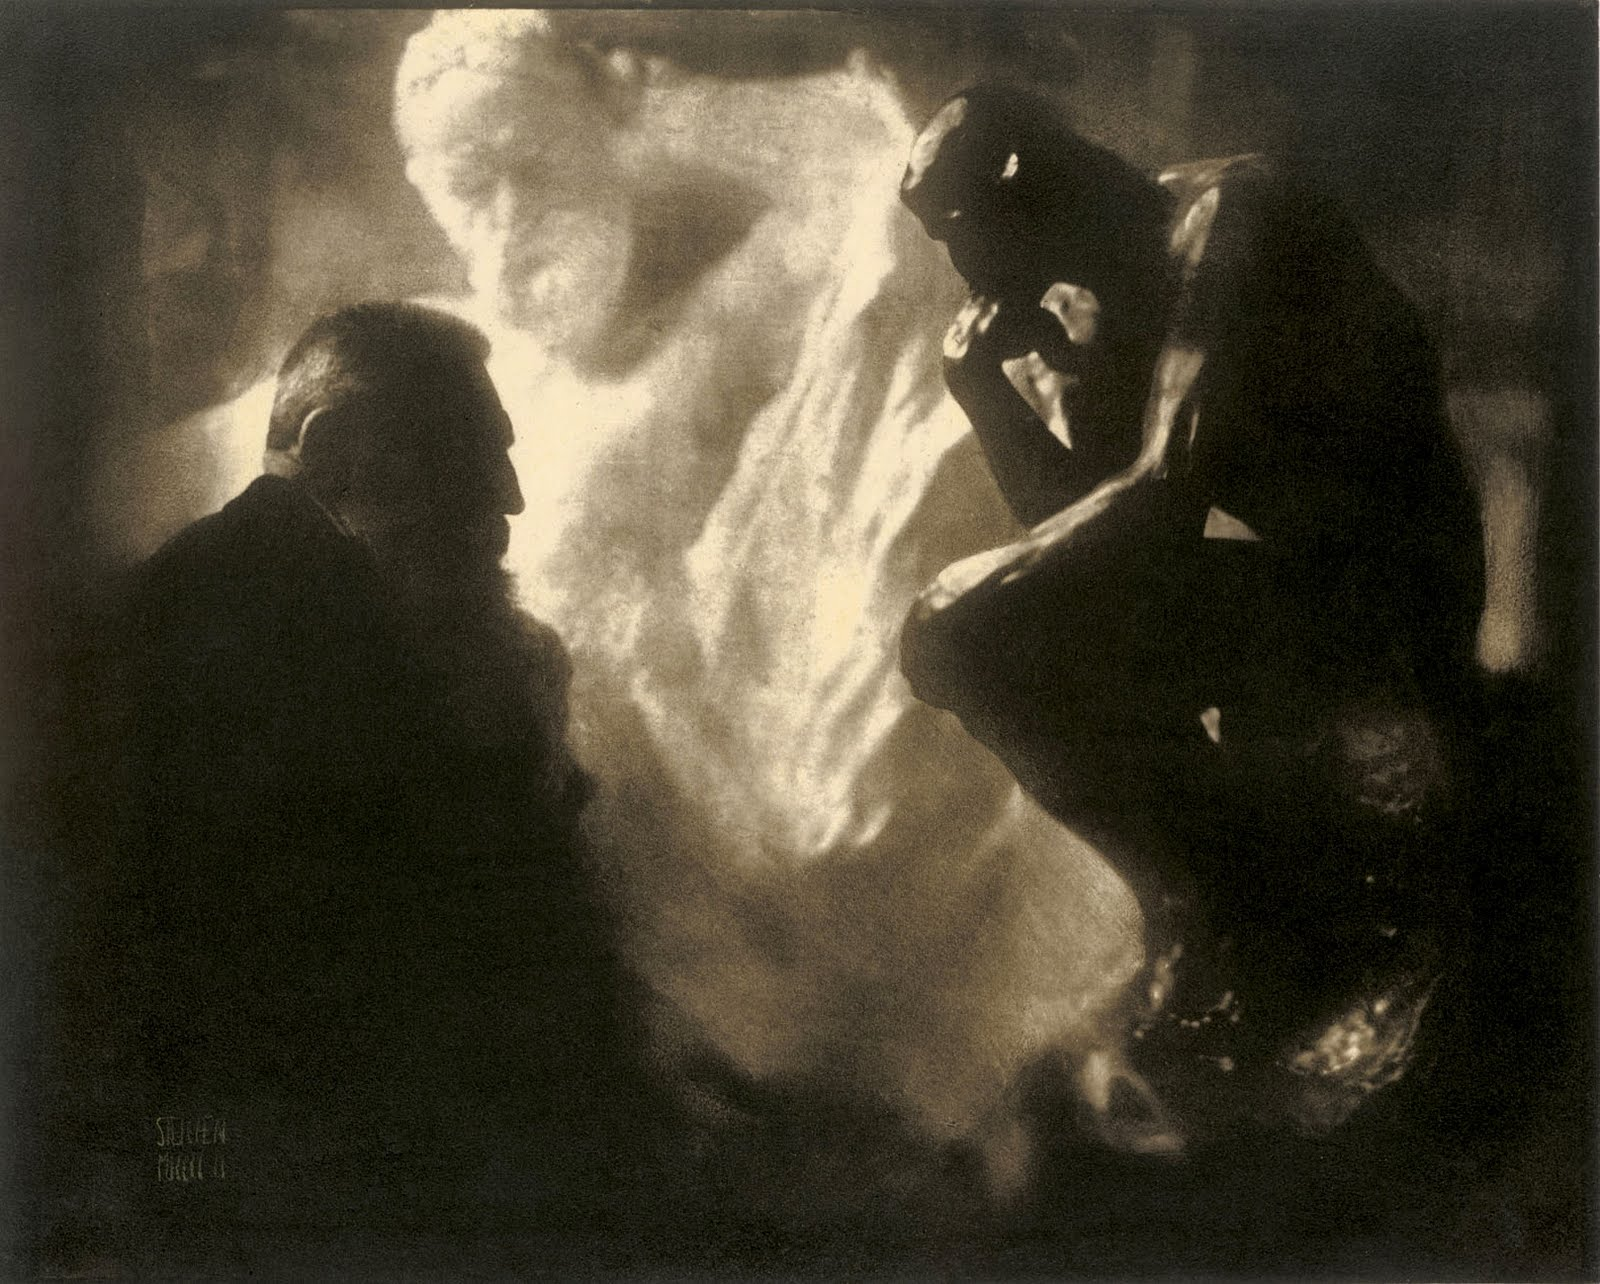 edward steichen 1879-1973 inductee sponsor: professional photographers of america about eduard jean steichen who later changed his name to edward, was born in 1879 in luxembourg to jean-pierre and marie kemp steichen.